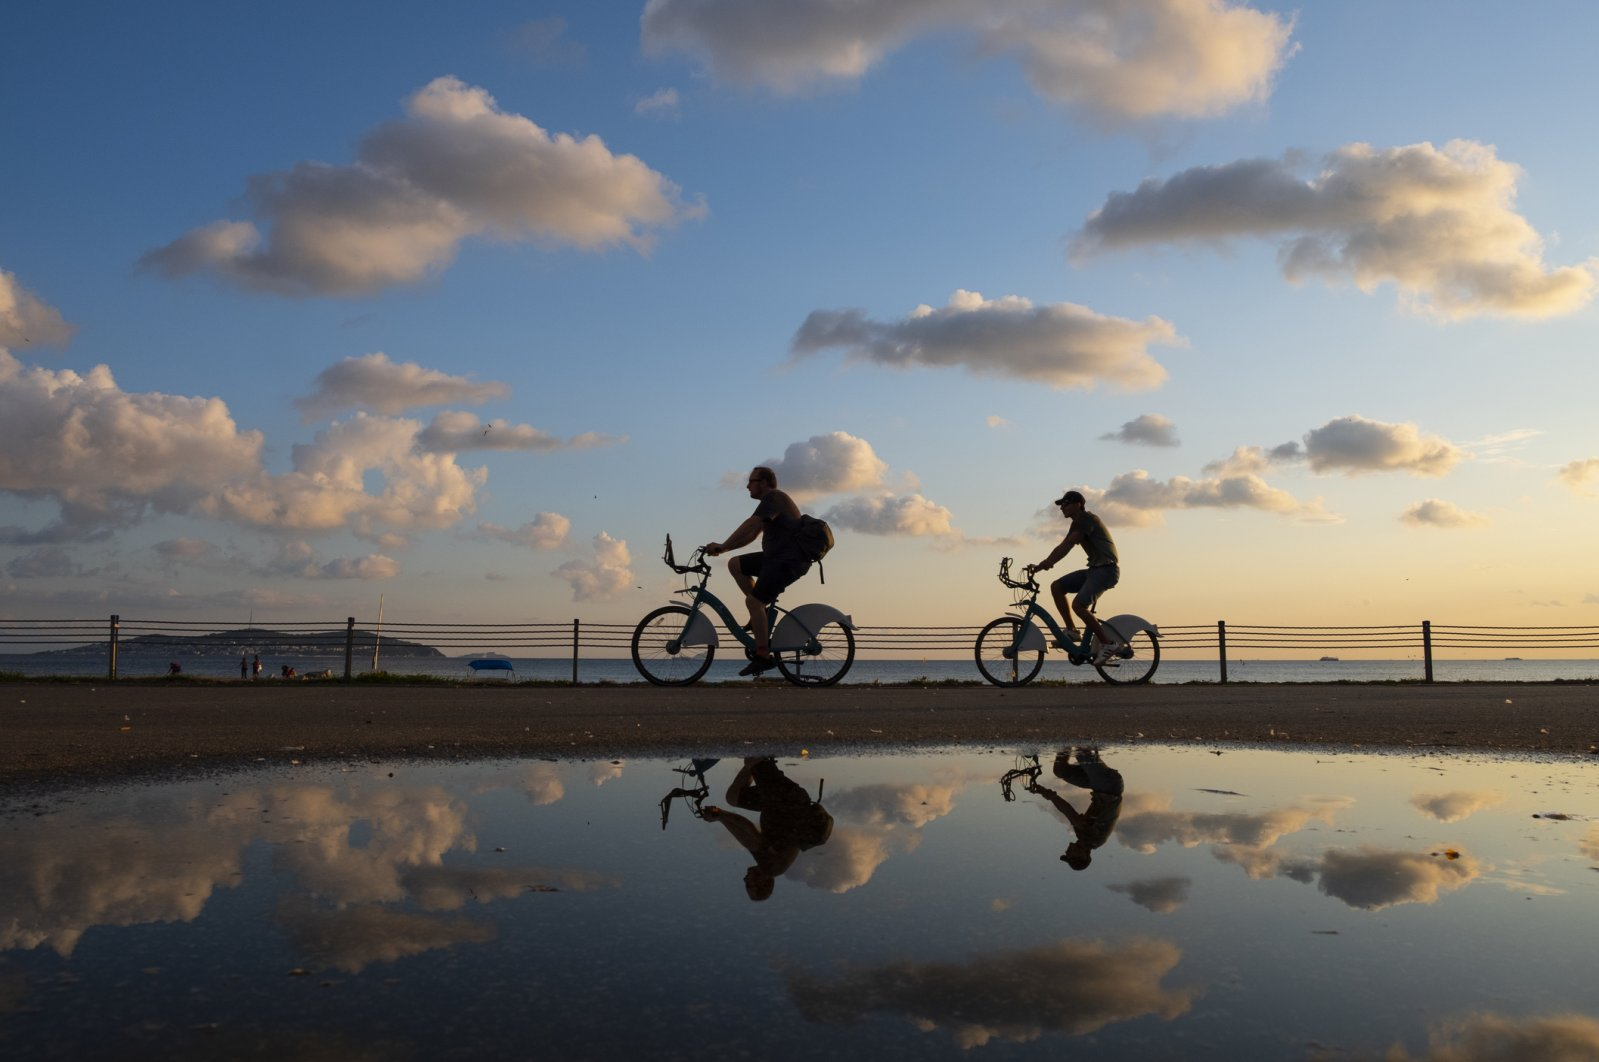 The silhouette of a pair of cyclists is seen at sunset in Bostancı on Istanbul's Anatolian side, July 23, 2019. (iStock Photo)